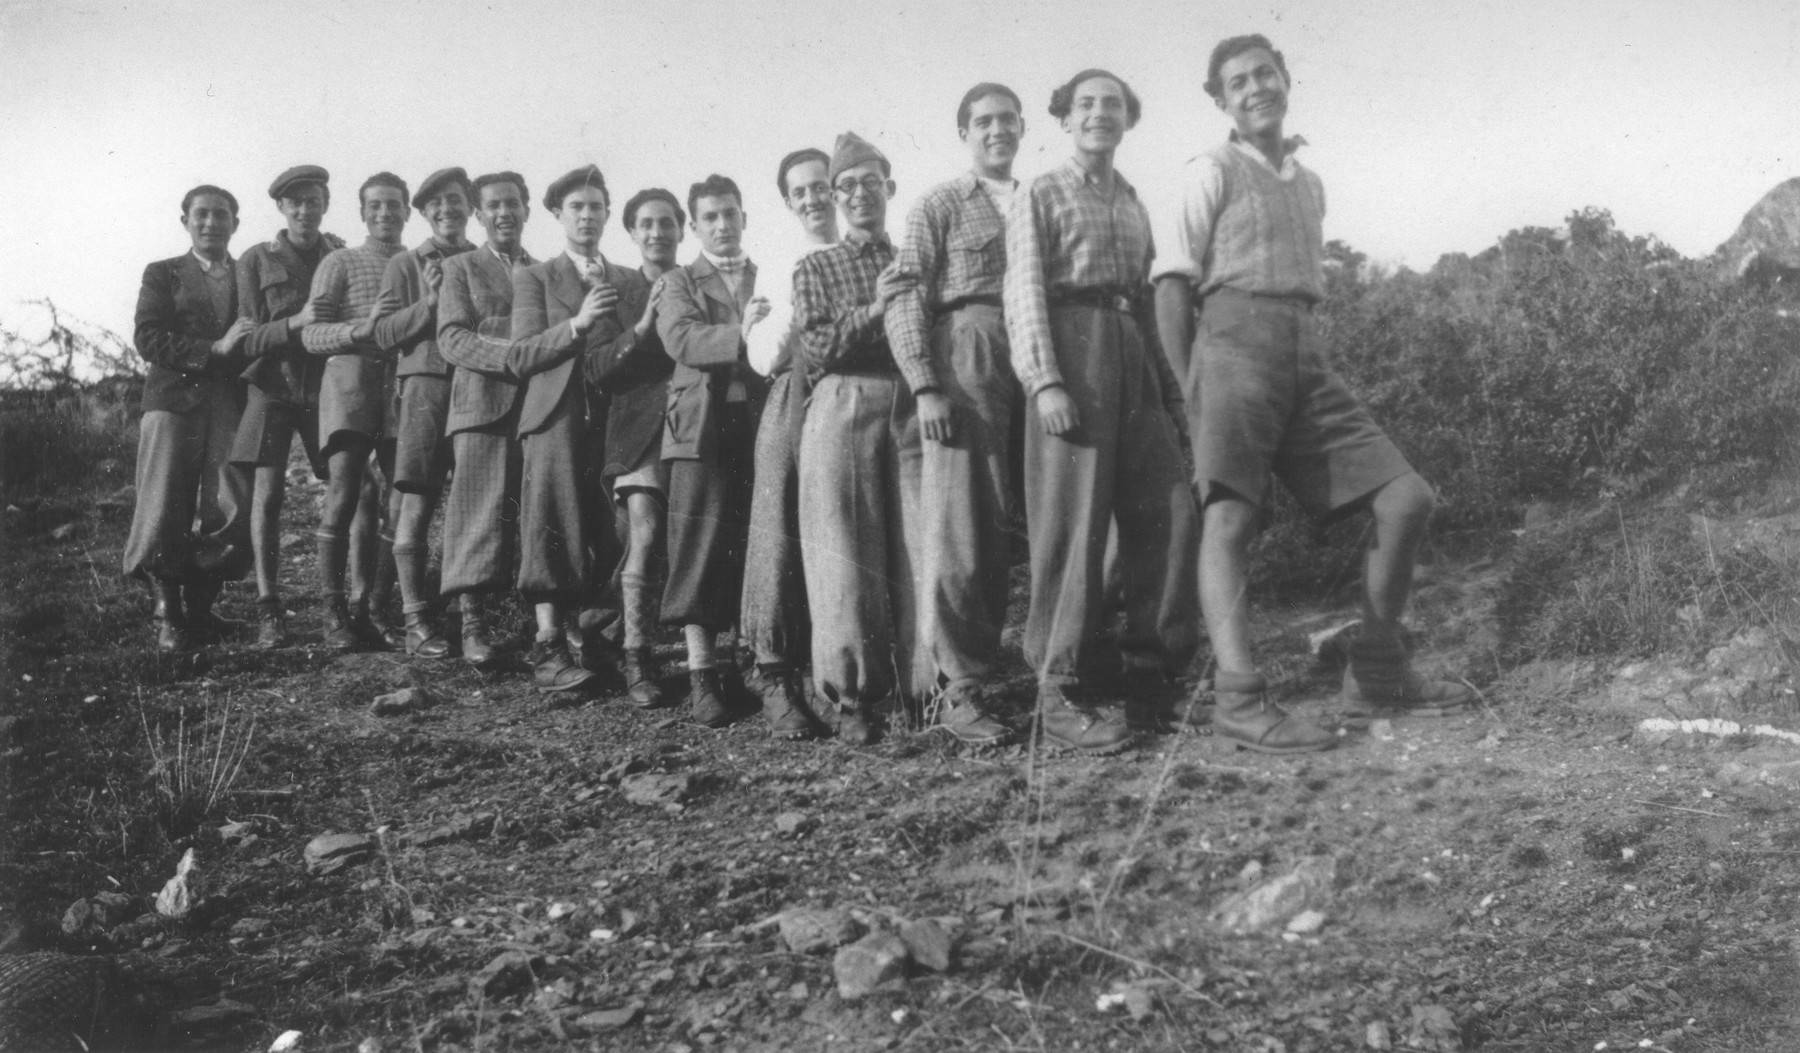 Group portrait of members of the Betar Zionist youth group on an excursion to Argos.  Jaco Beraha is pictured first on the right.